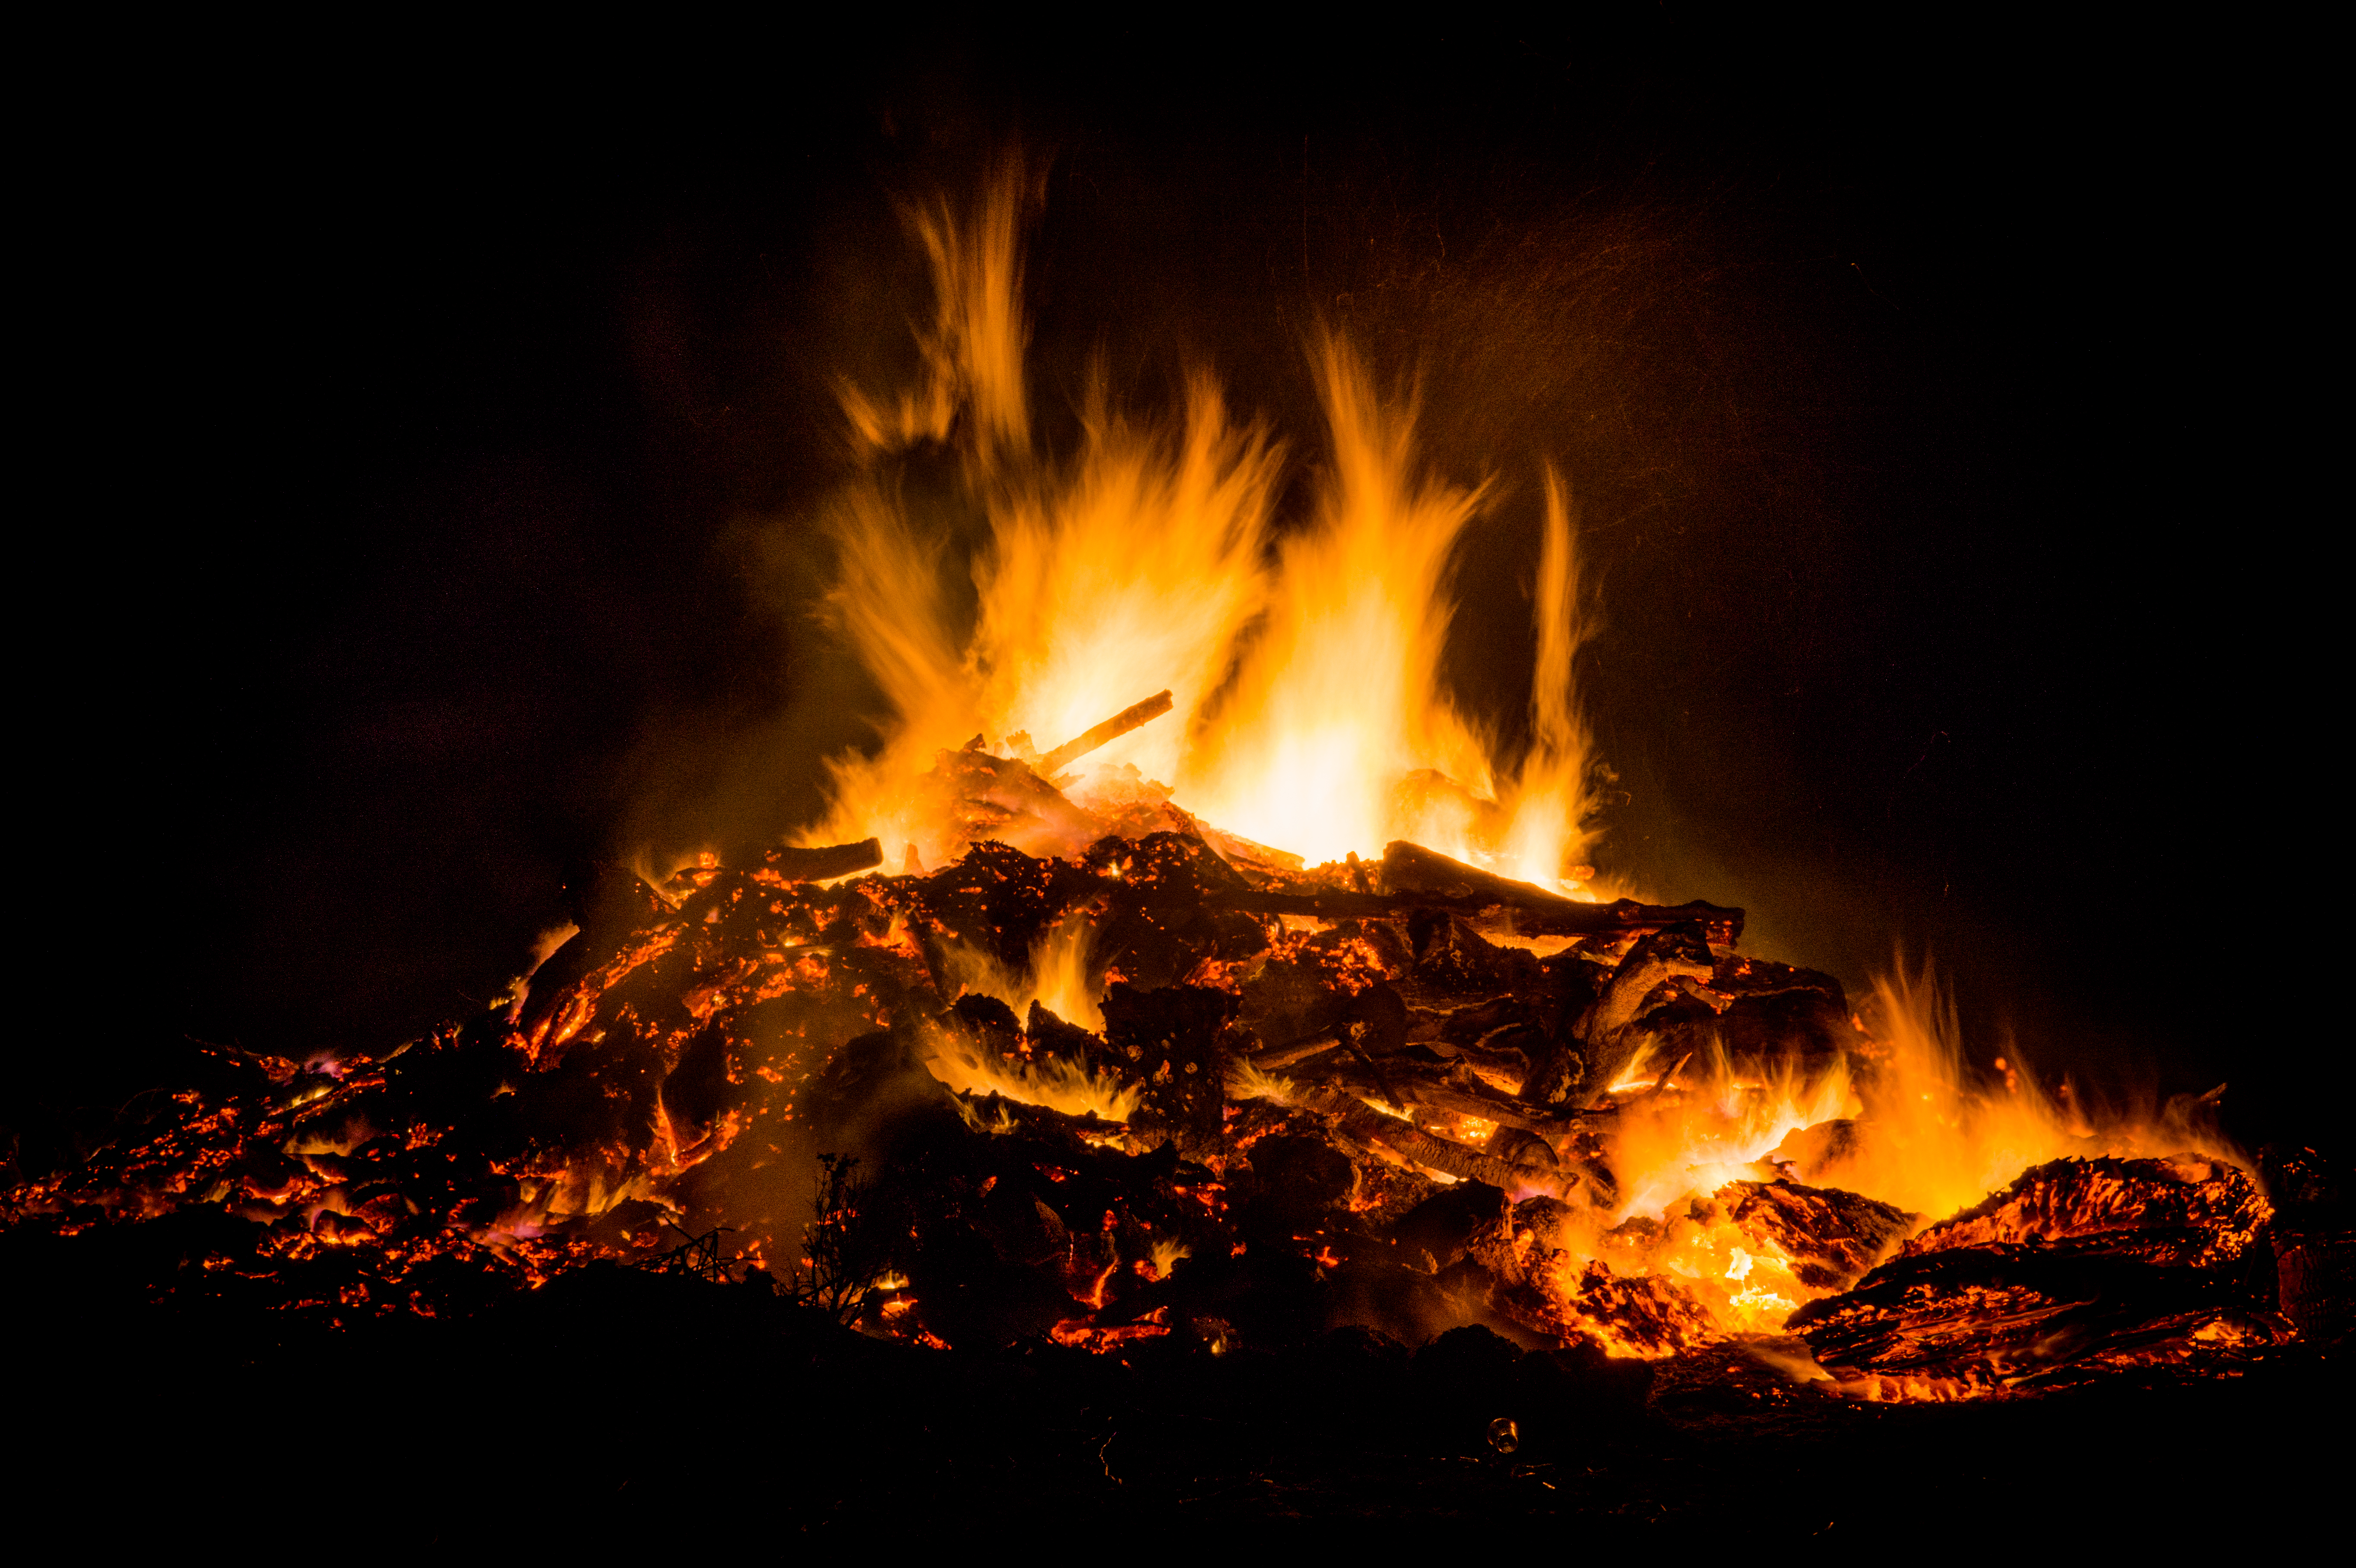 https://static.pexels.com/photos/9334/night-fire-easter-celebration.jpg